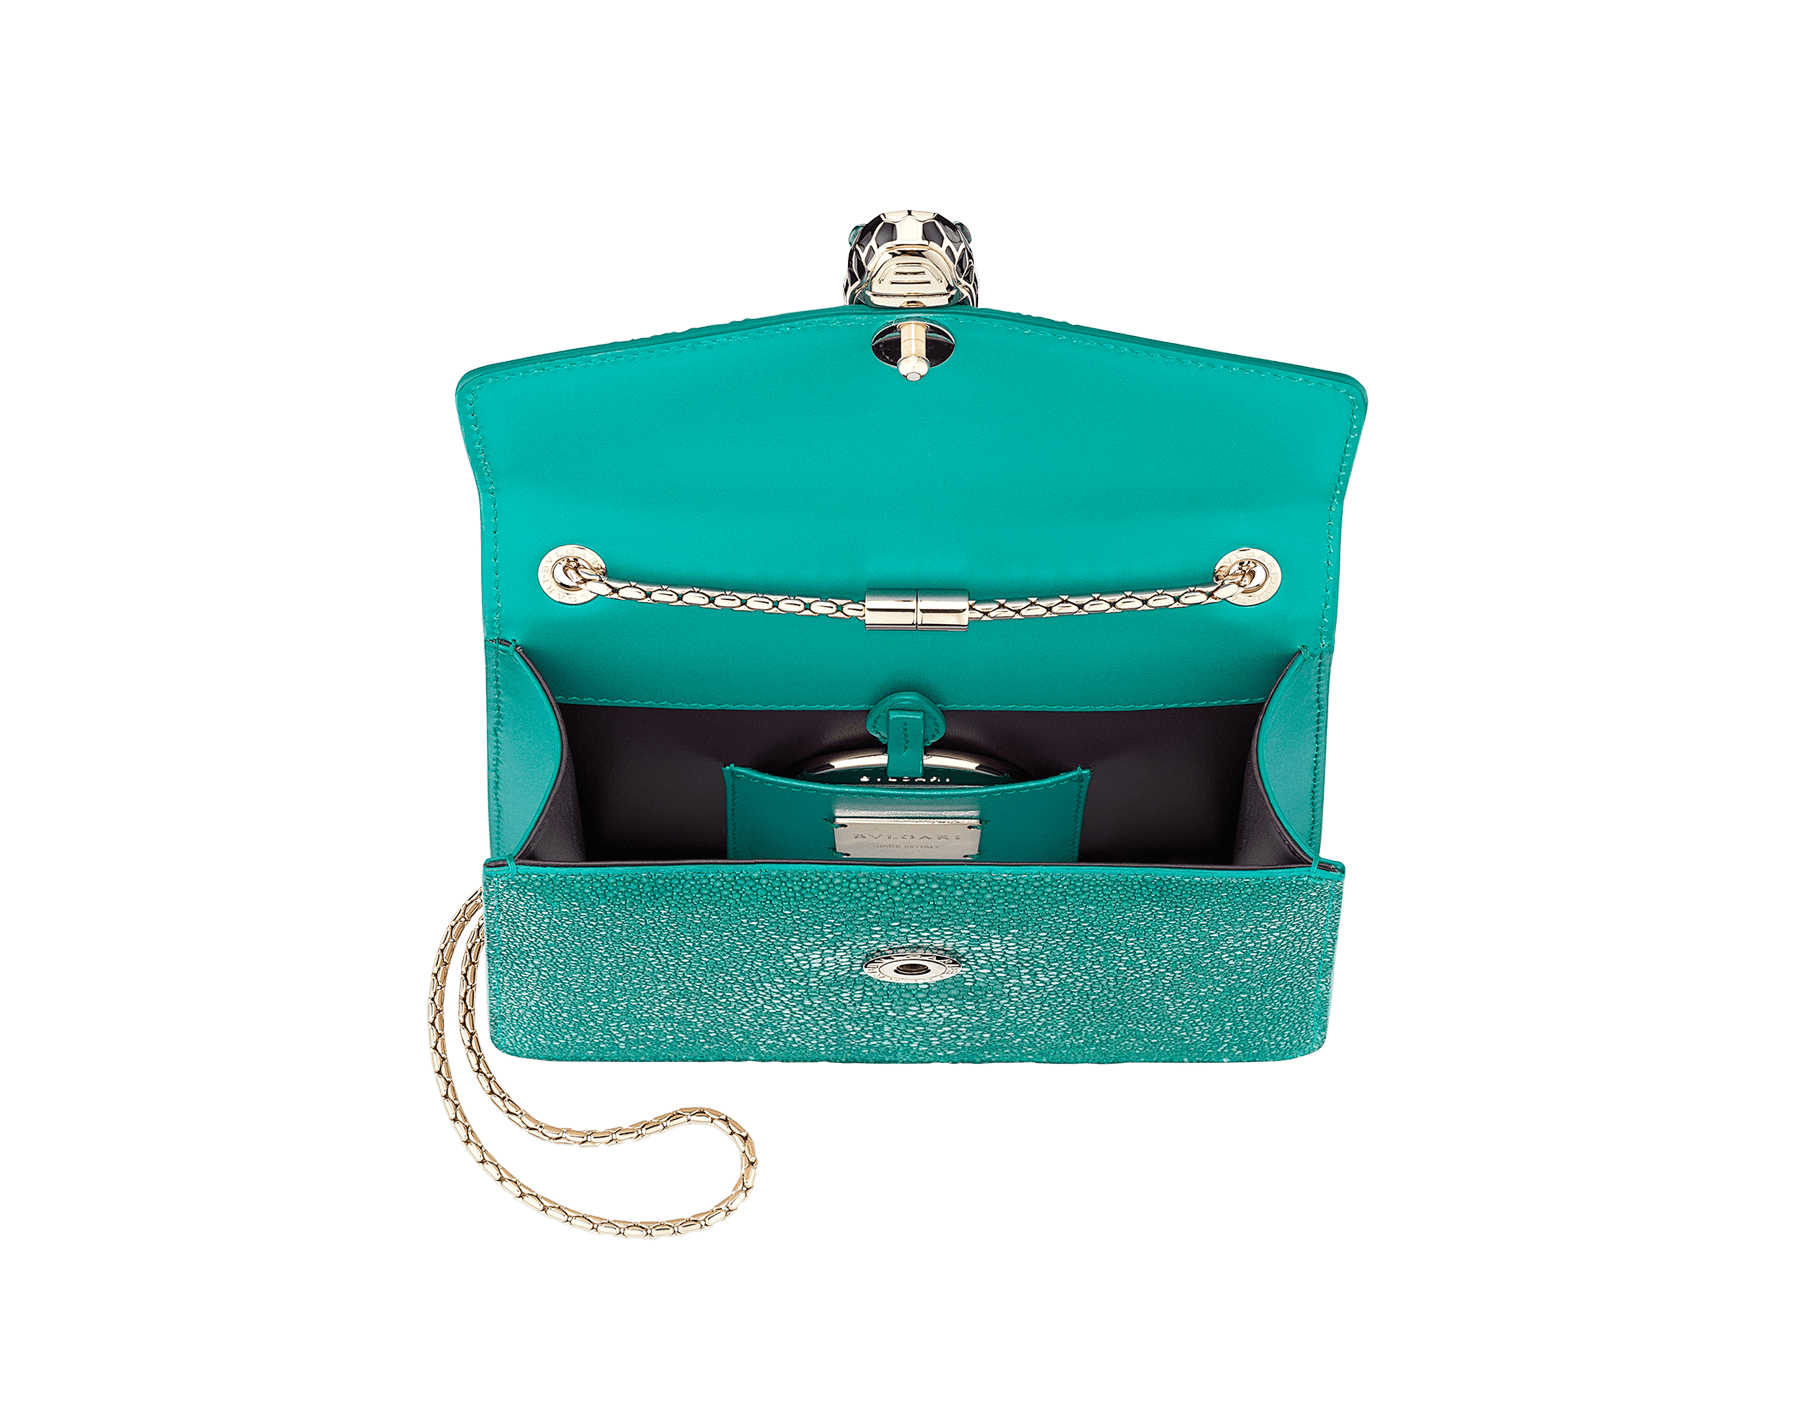 Serpenti Forever crossbody bag in tropical turquoise galuchat skin. Snakehead closure in light gold plated brass decorated with black and white enamel, and green malachite eyes. 288067 image 4